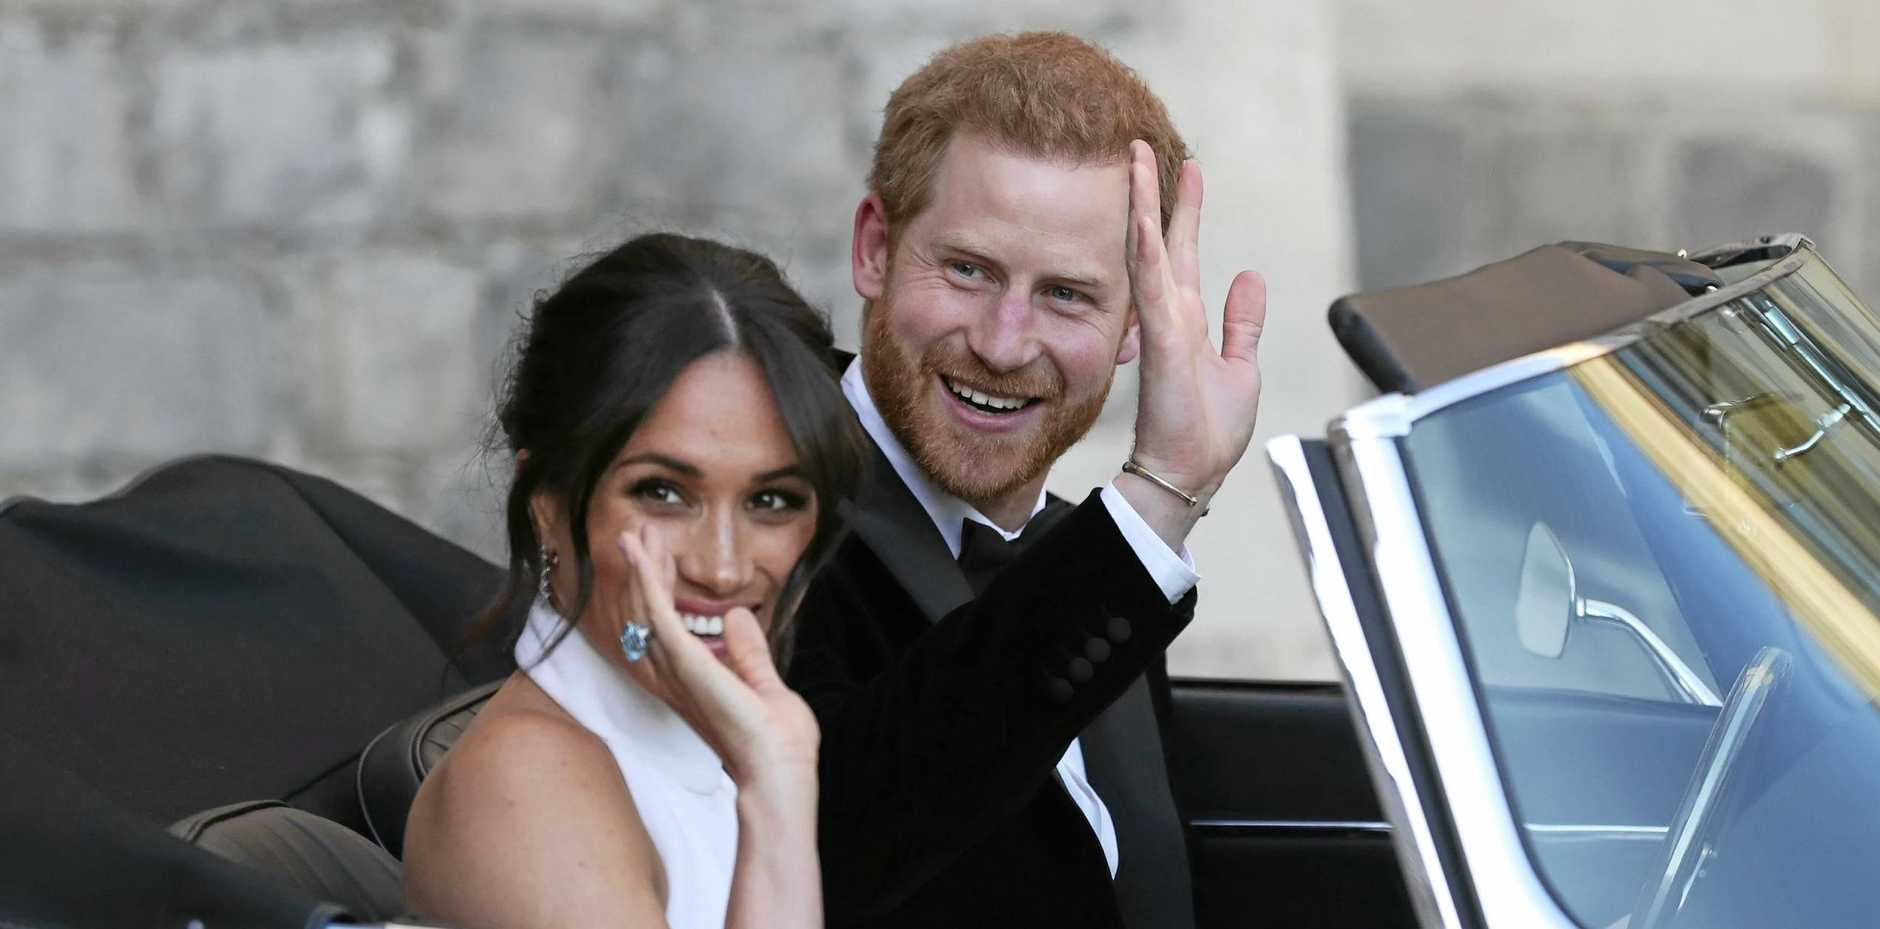 The newly married Duke and Duchess of Sussex, Meghan Markle and Prince Harry will land in Australia later this month